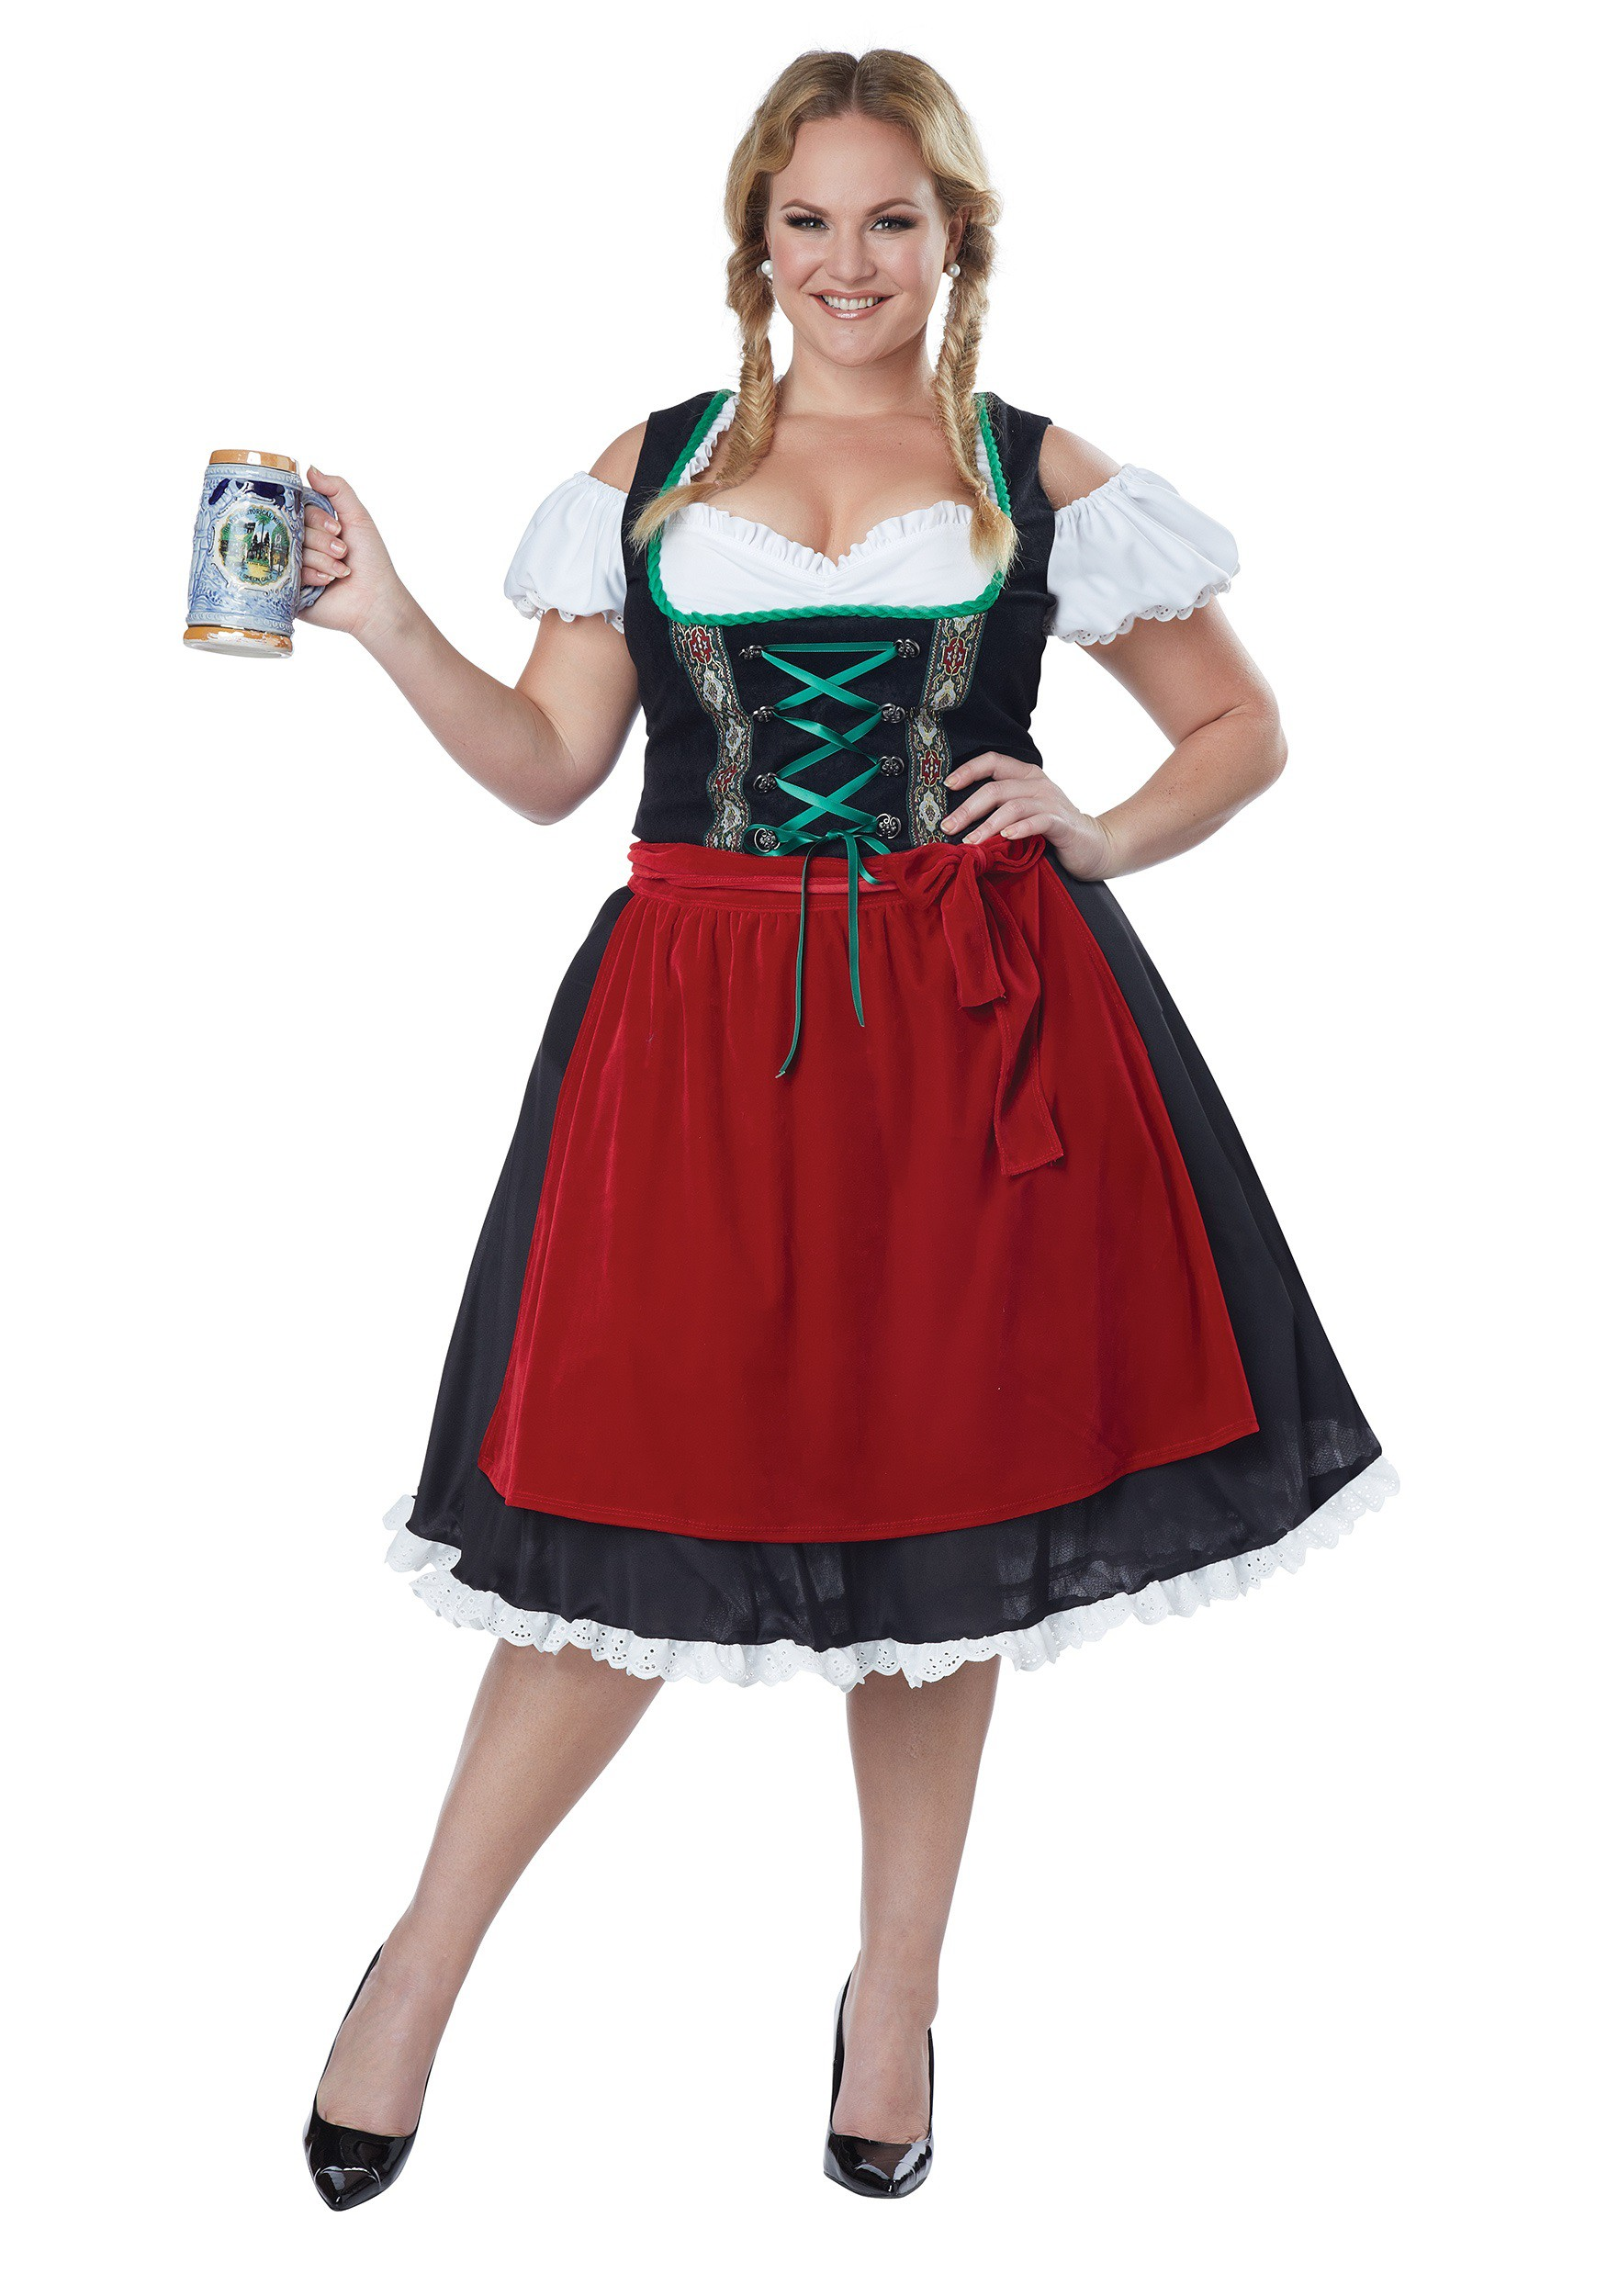 women 39 s plus size oktoberfest fraulein costume. Black Bedroom Furniture Sets. Home Design Ideas